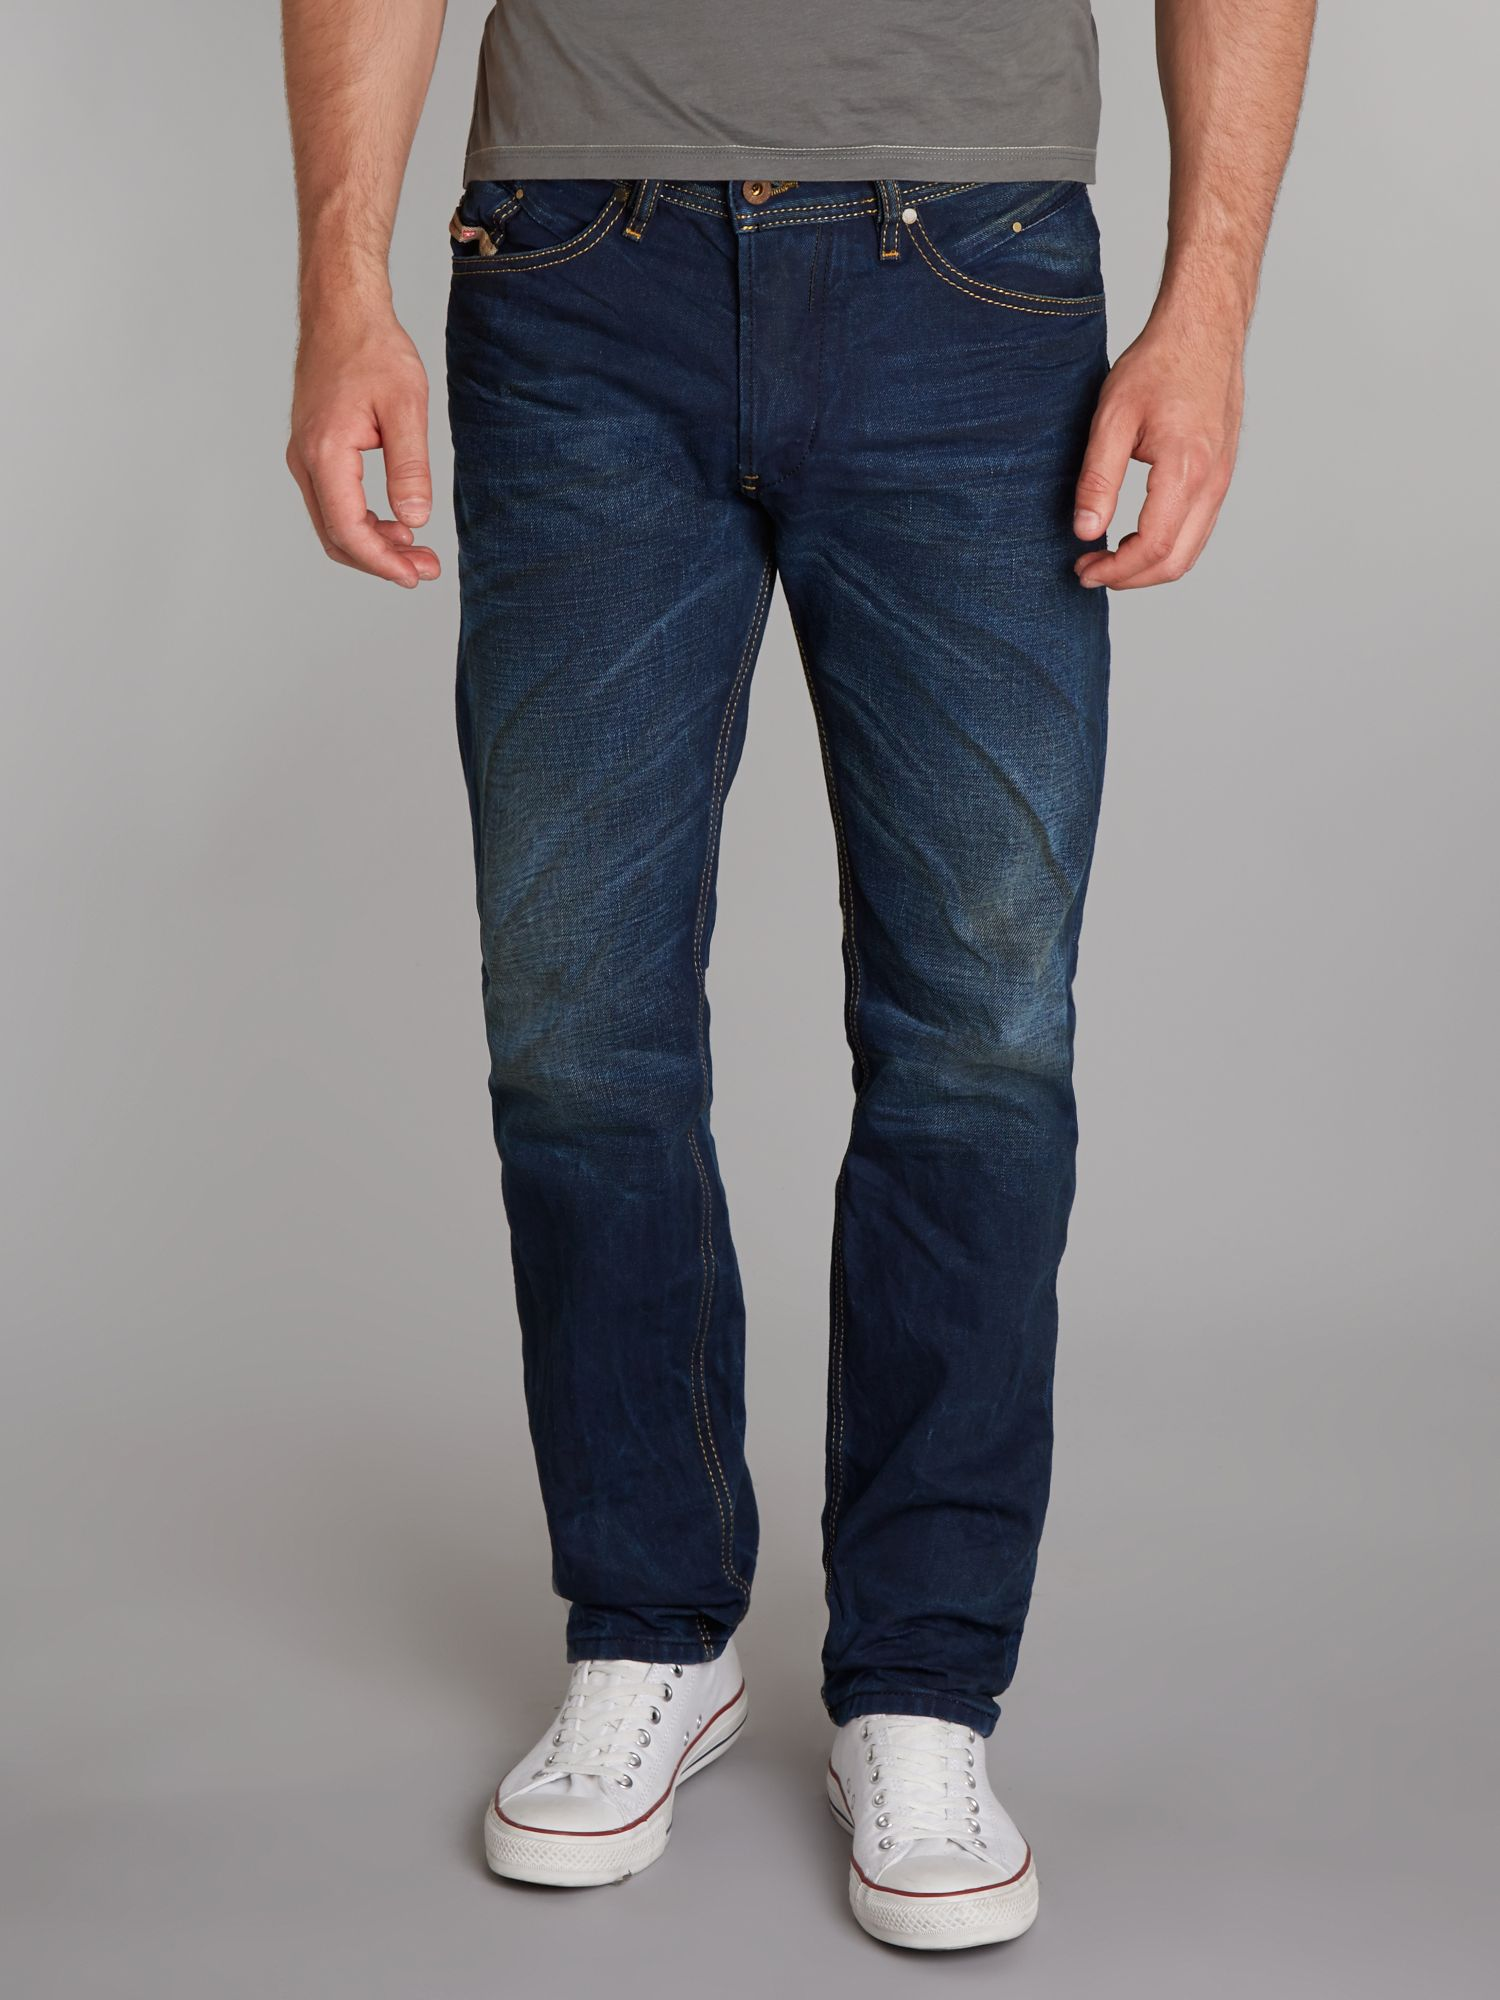 Belther 815A slim fit jeans